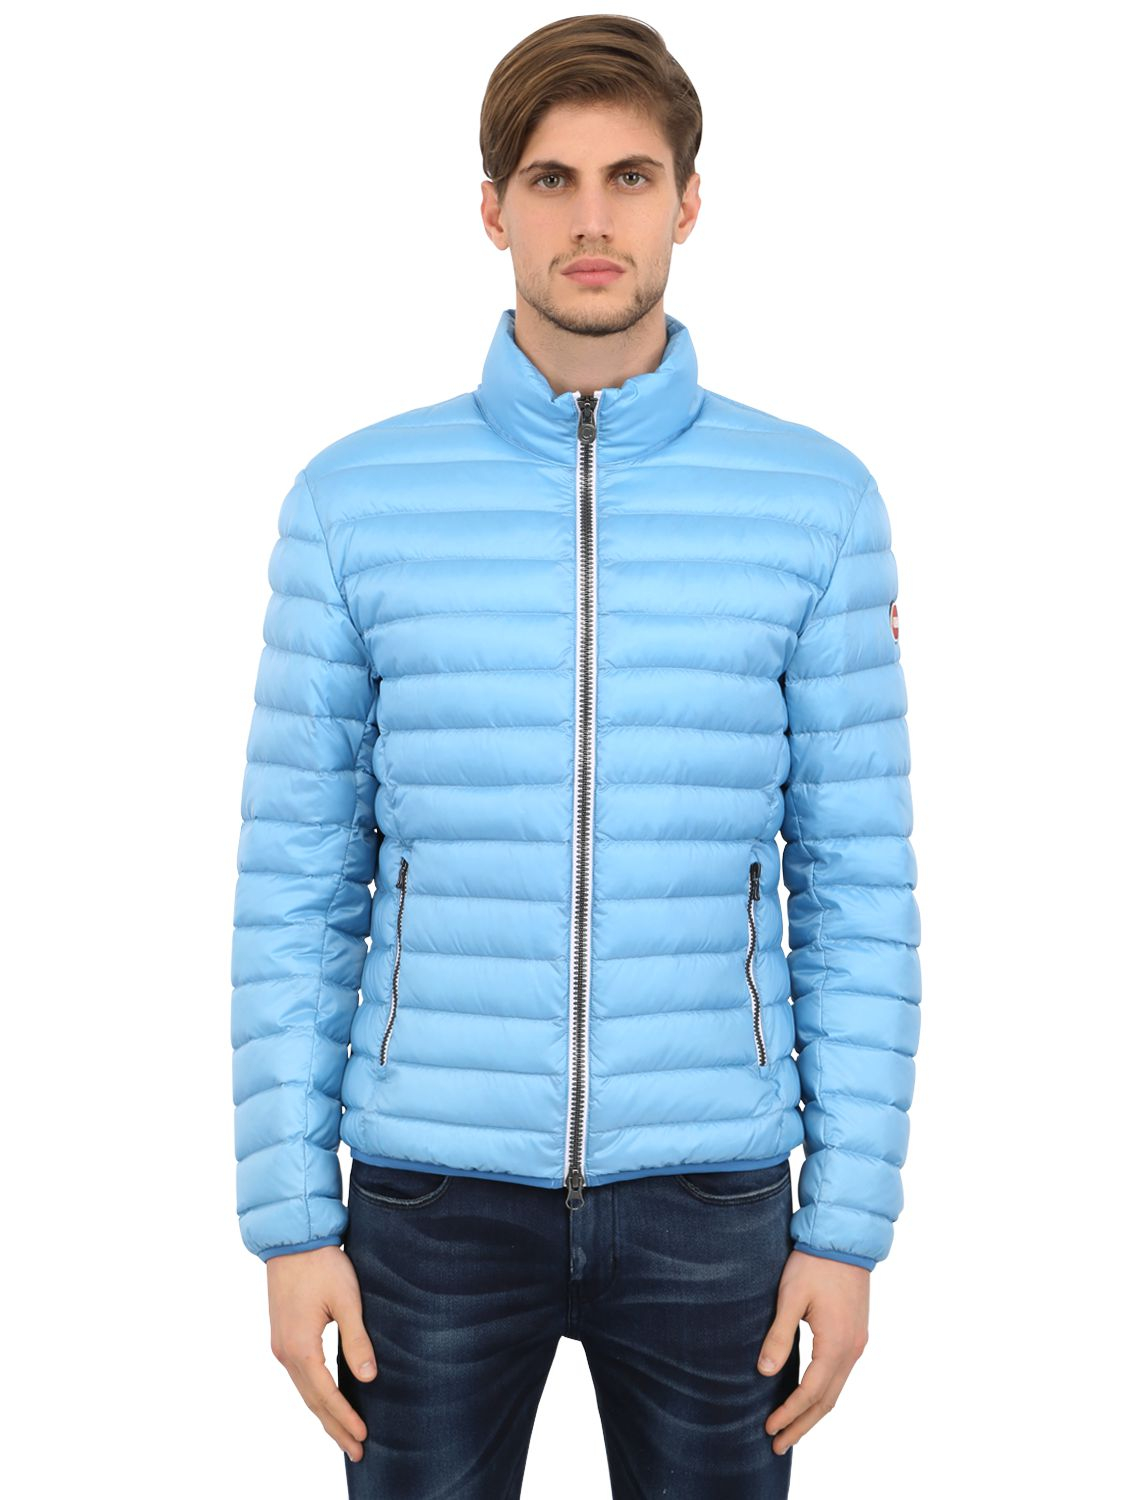 Lyst Colmar Quilted Light Nylon Down Jacket In Blue For Men